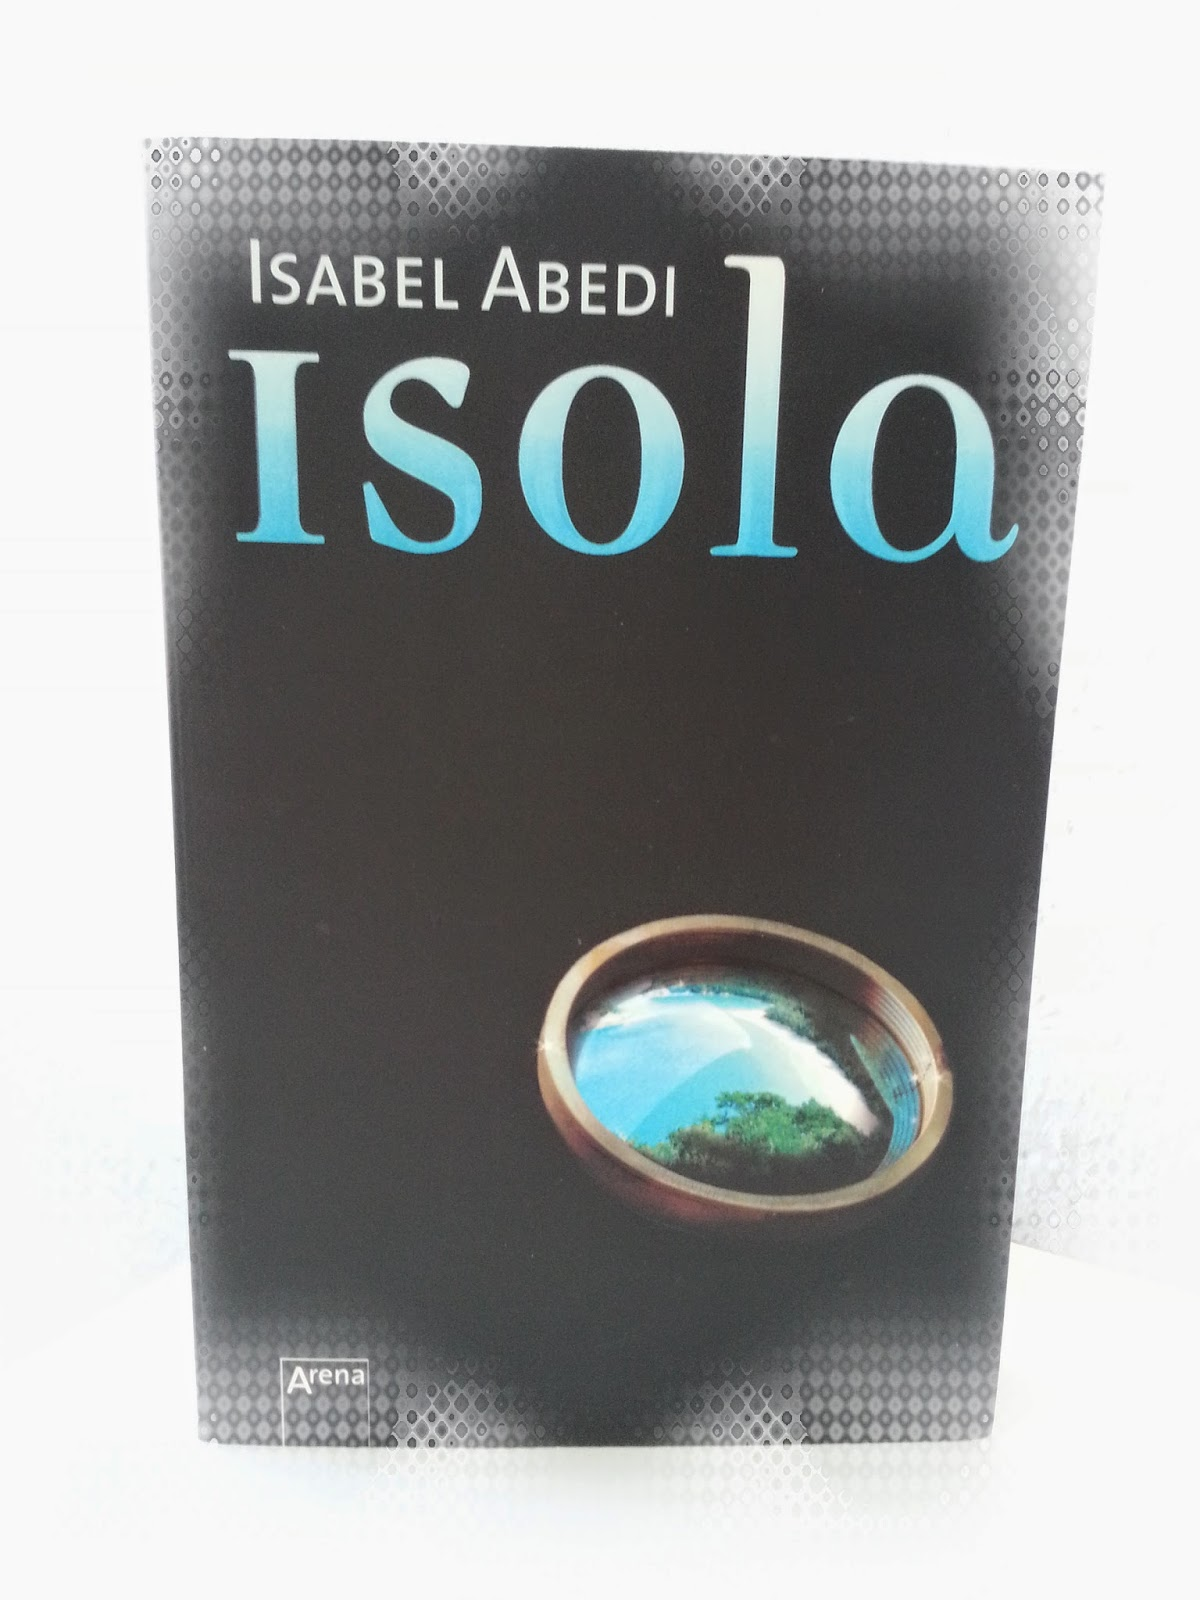 http://www.amazon.de/Isola-Roman-Isabel-Abedi/dp/3401503863/ref=sr_1_1_bnp_1_per?s=books&ie=UTF8&qid=1399922617&sr=1-1&keywords=isola